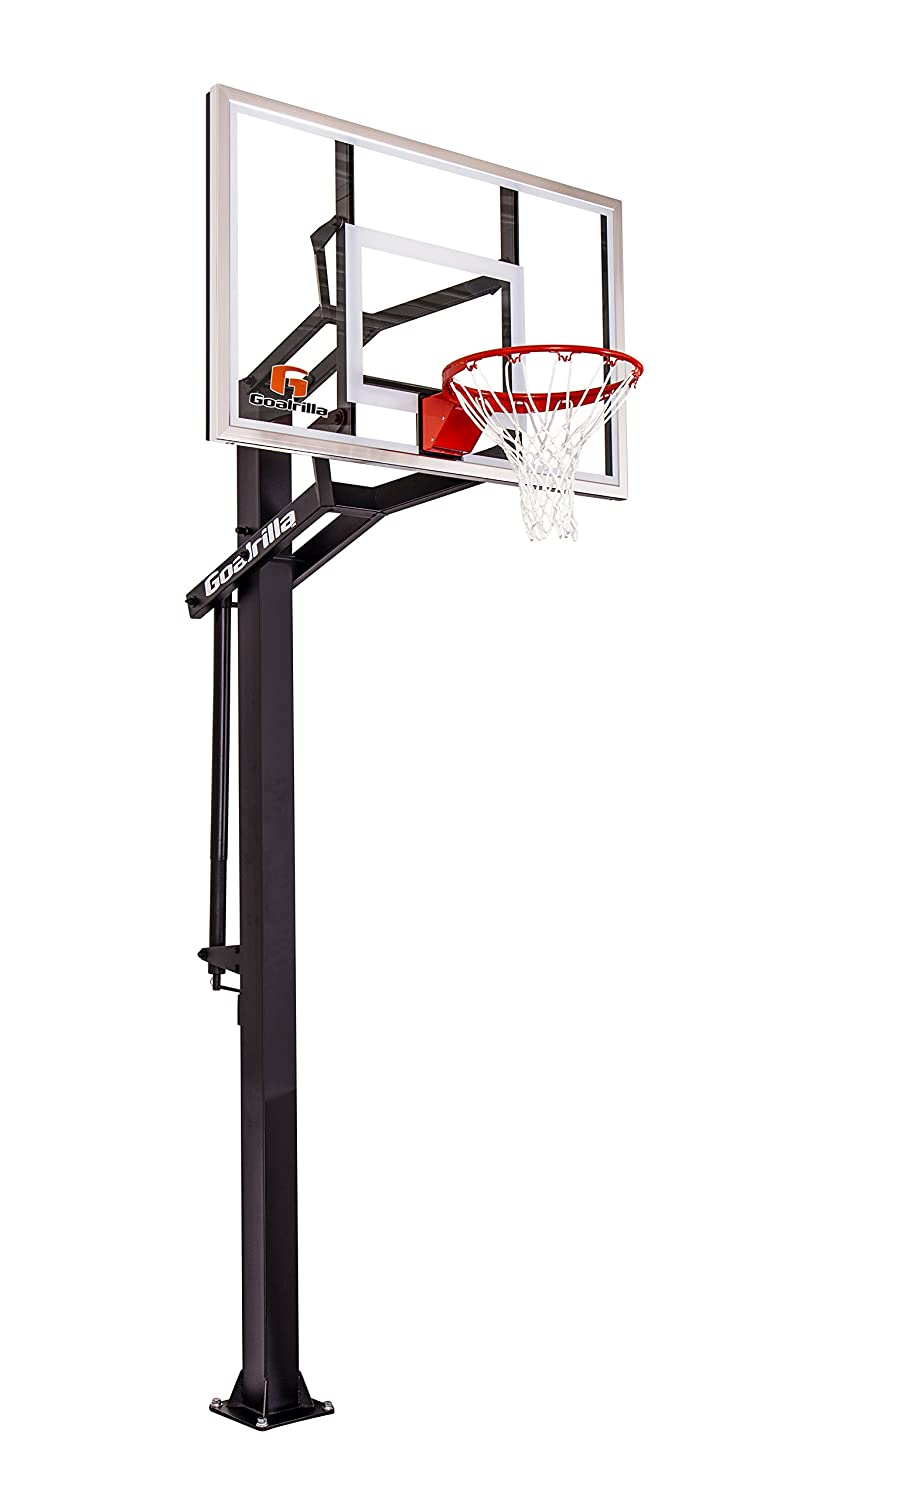 Amazon.com : Goalrilla GS54 Basketball Hoop : In Ground Basketball ...